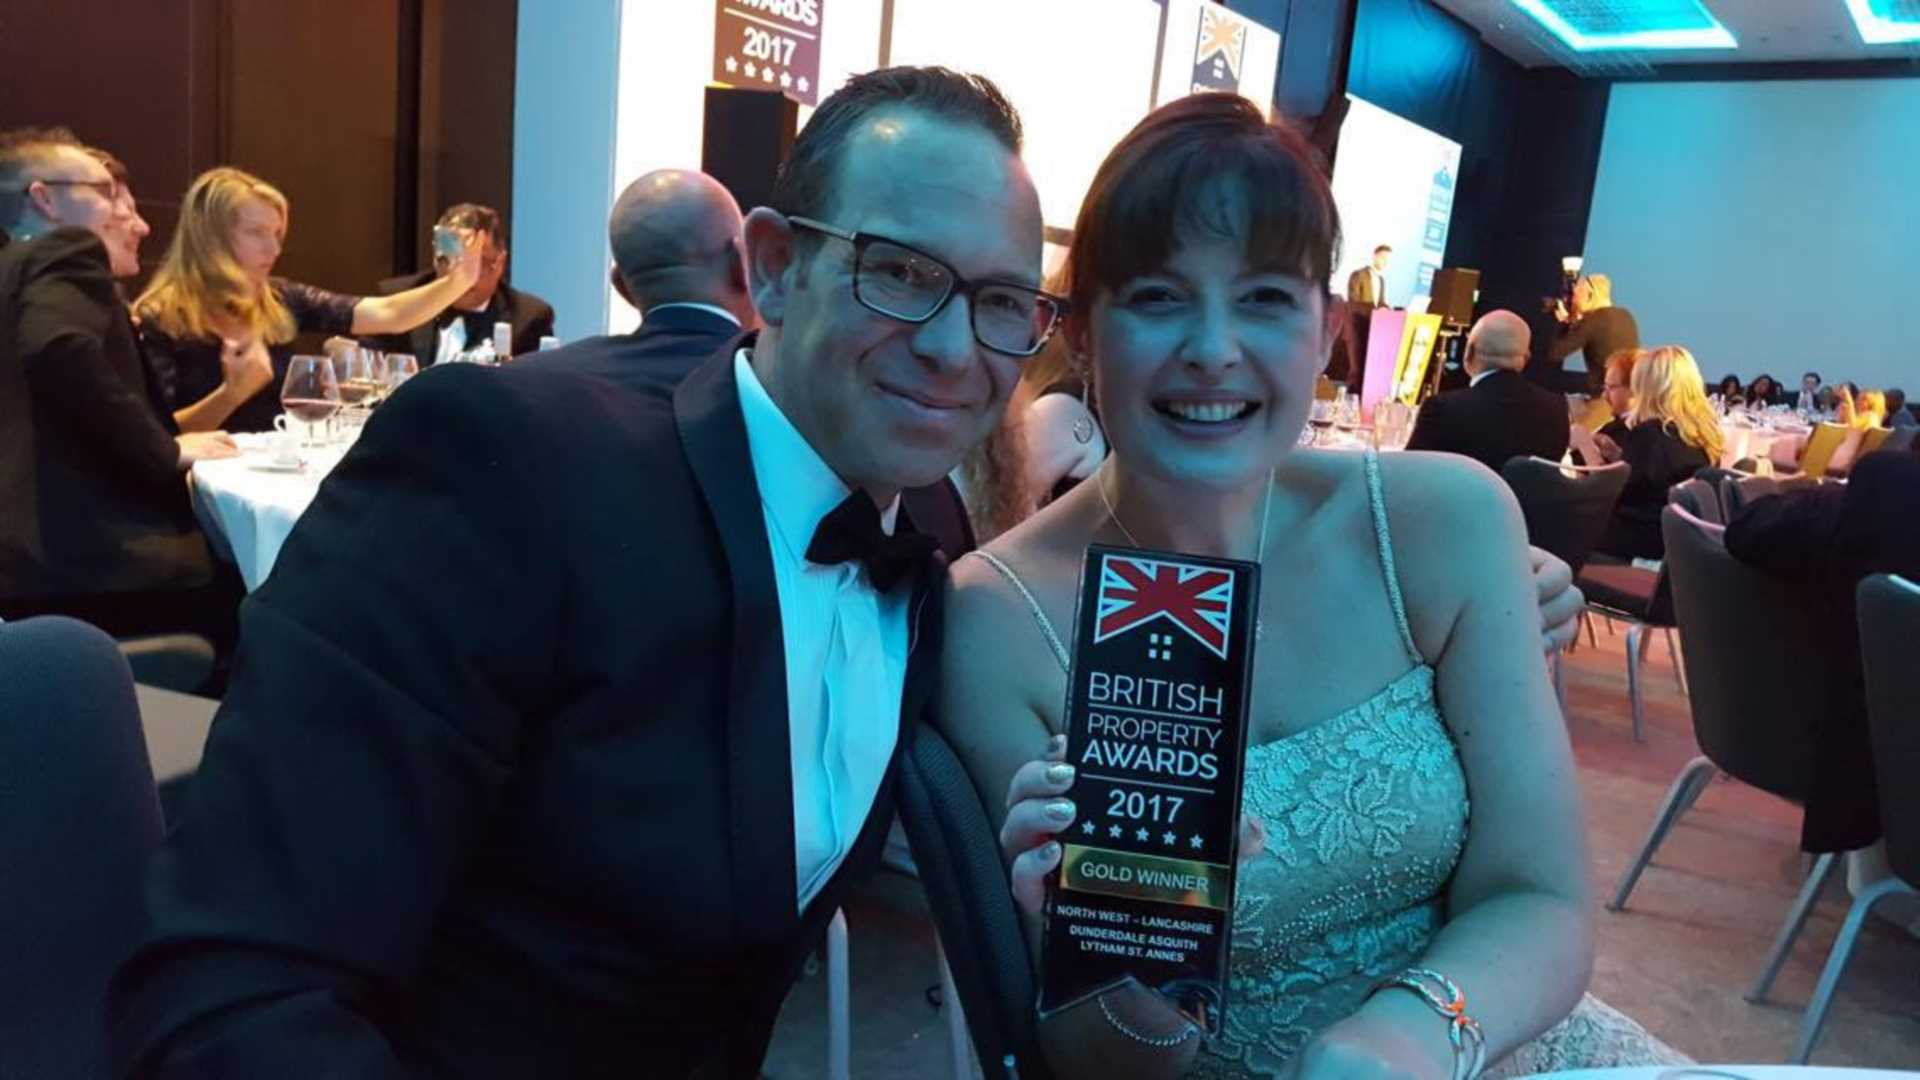 We have just been awarded Gold Winner at the British Property Awards - Lancashire - North West Region!